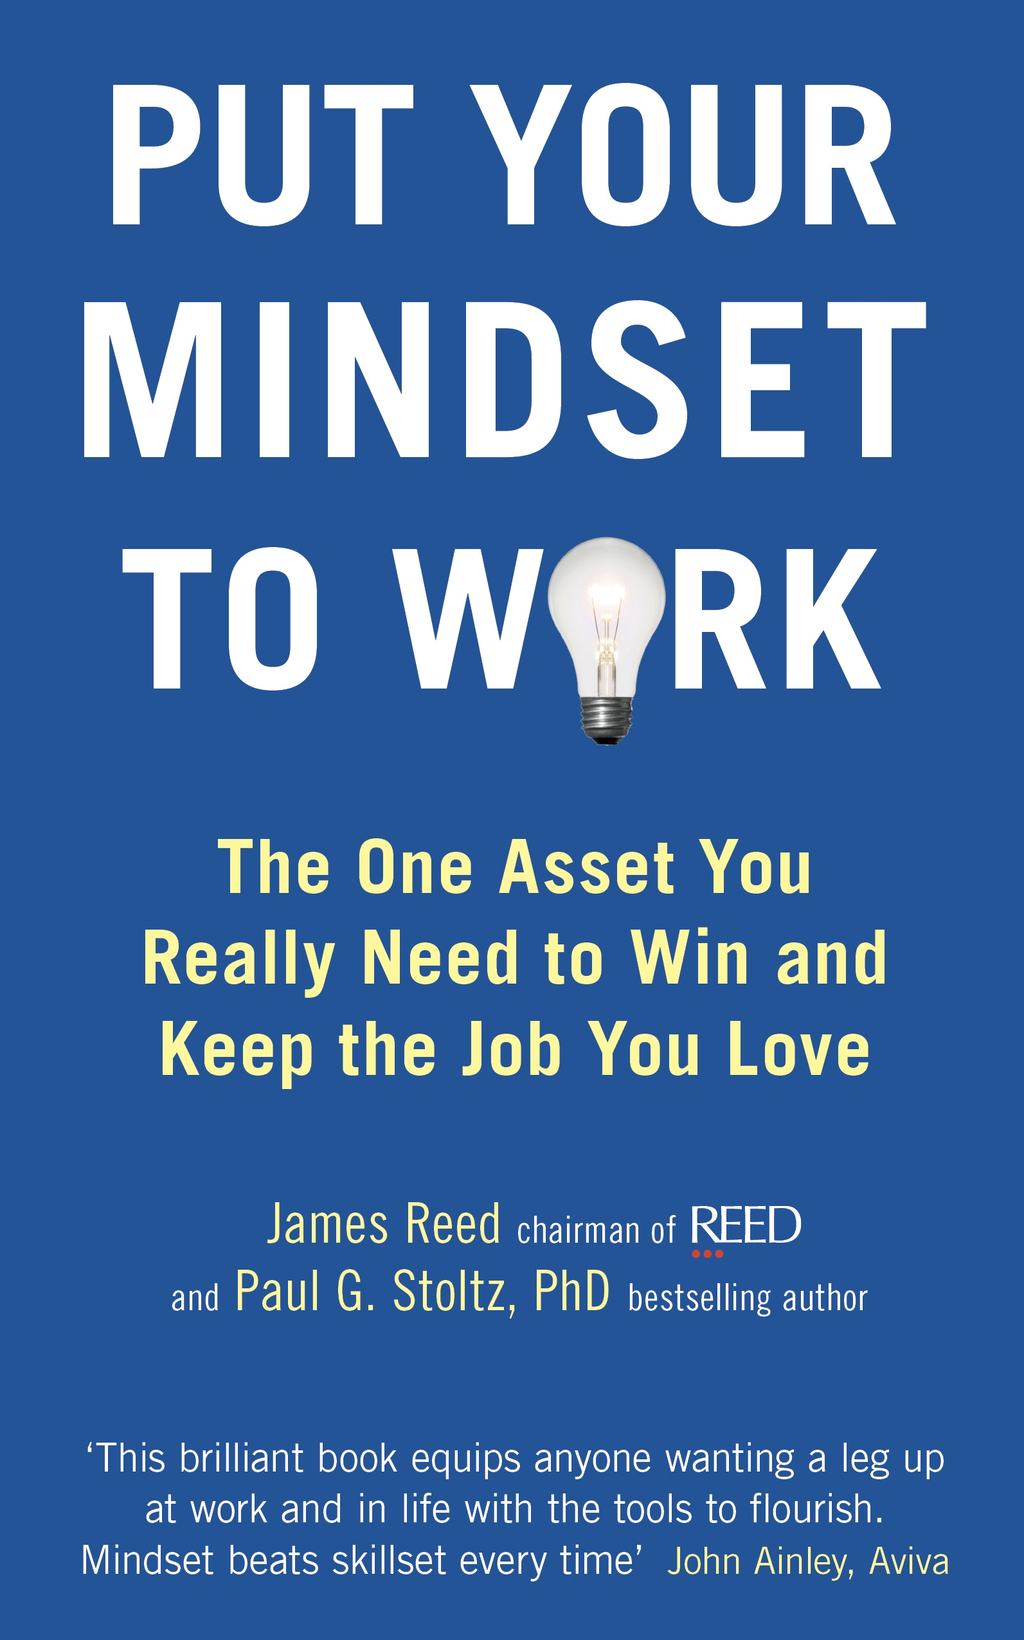 Put Your Mindset to Work The One Asset You Really Need to Win and Keep the Job You Love